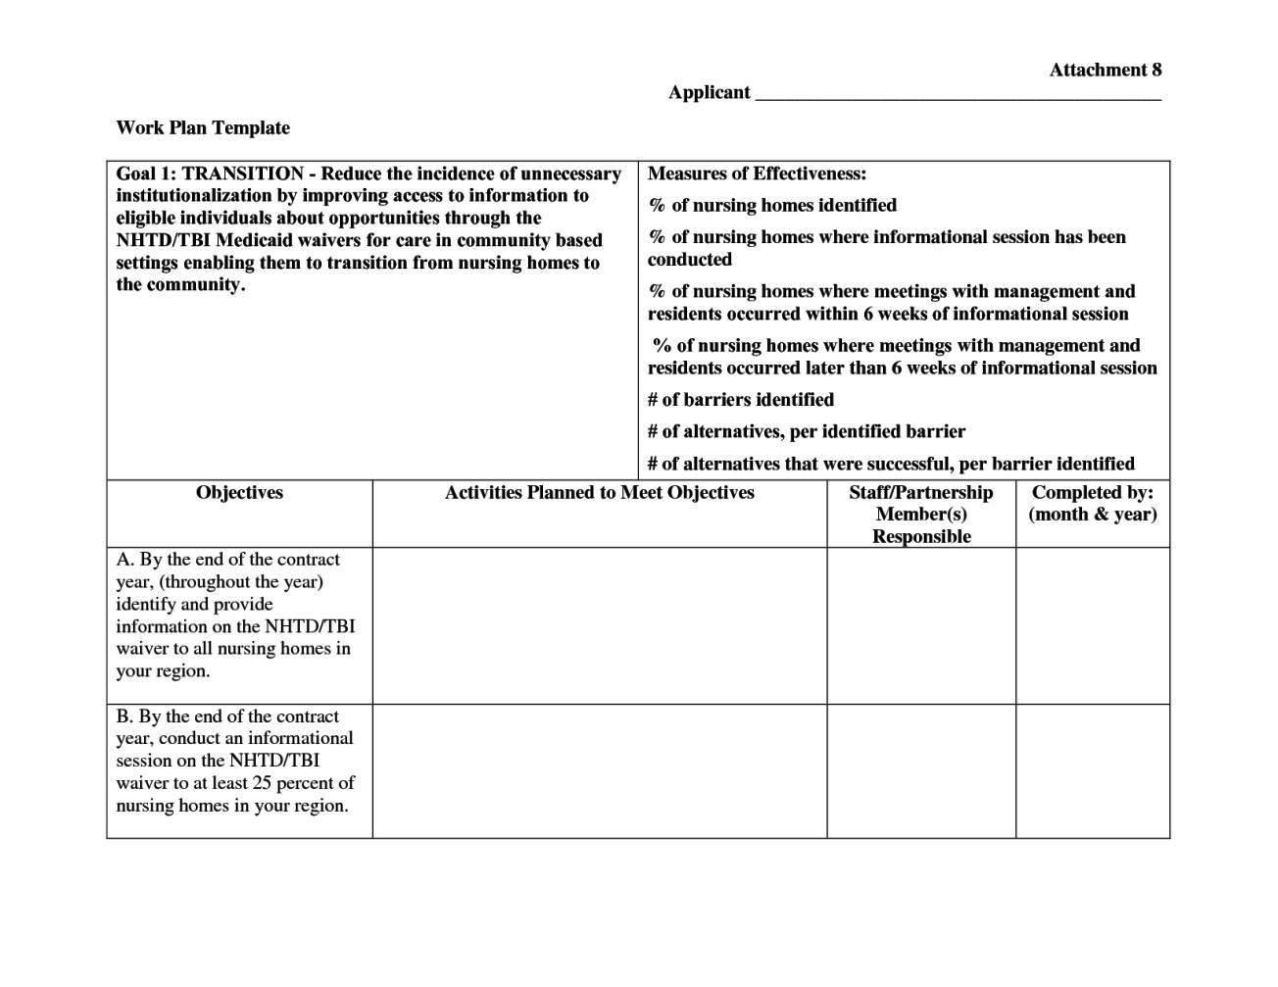 Contract transition plan template sampletemplatess for Ceo transition plan template